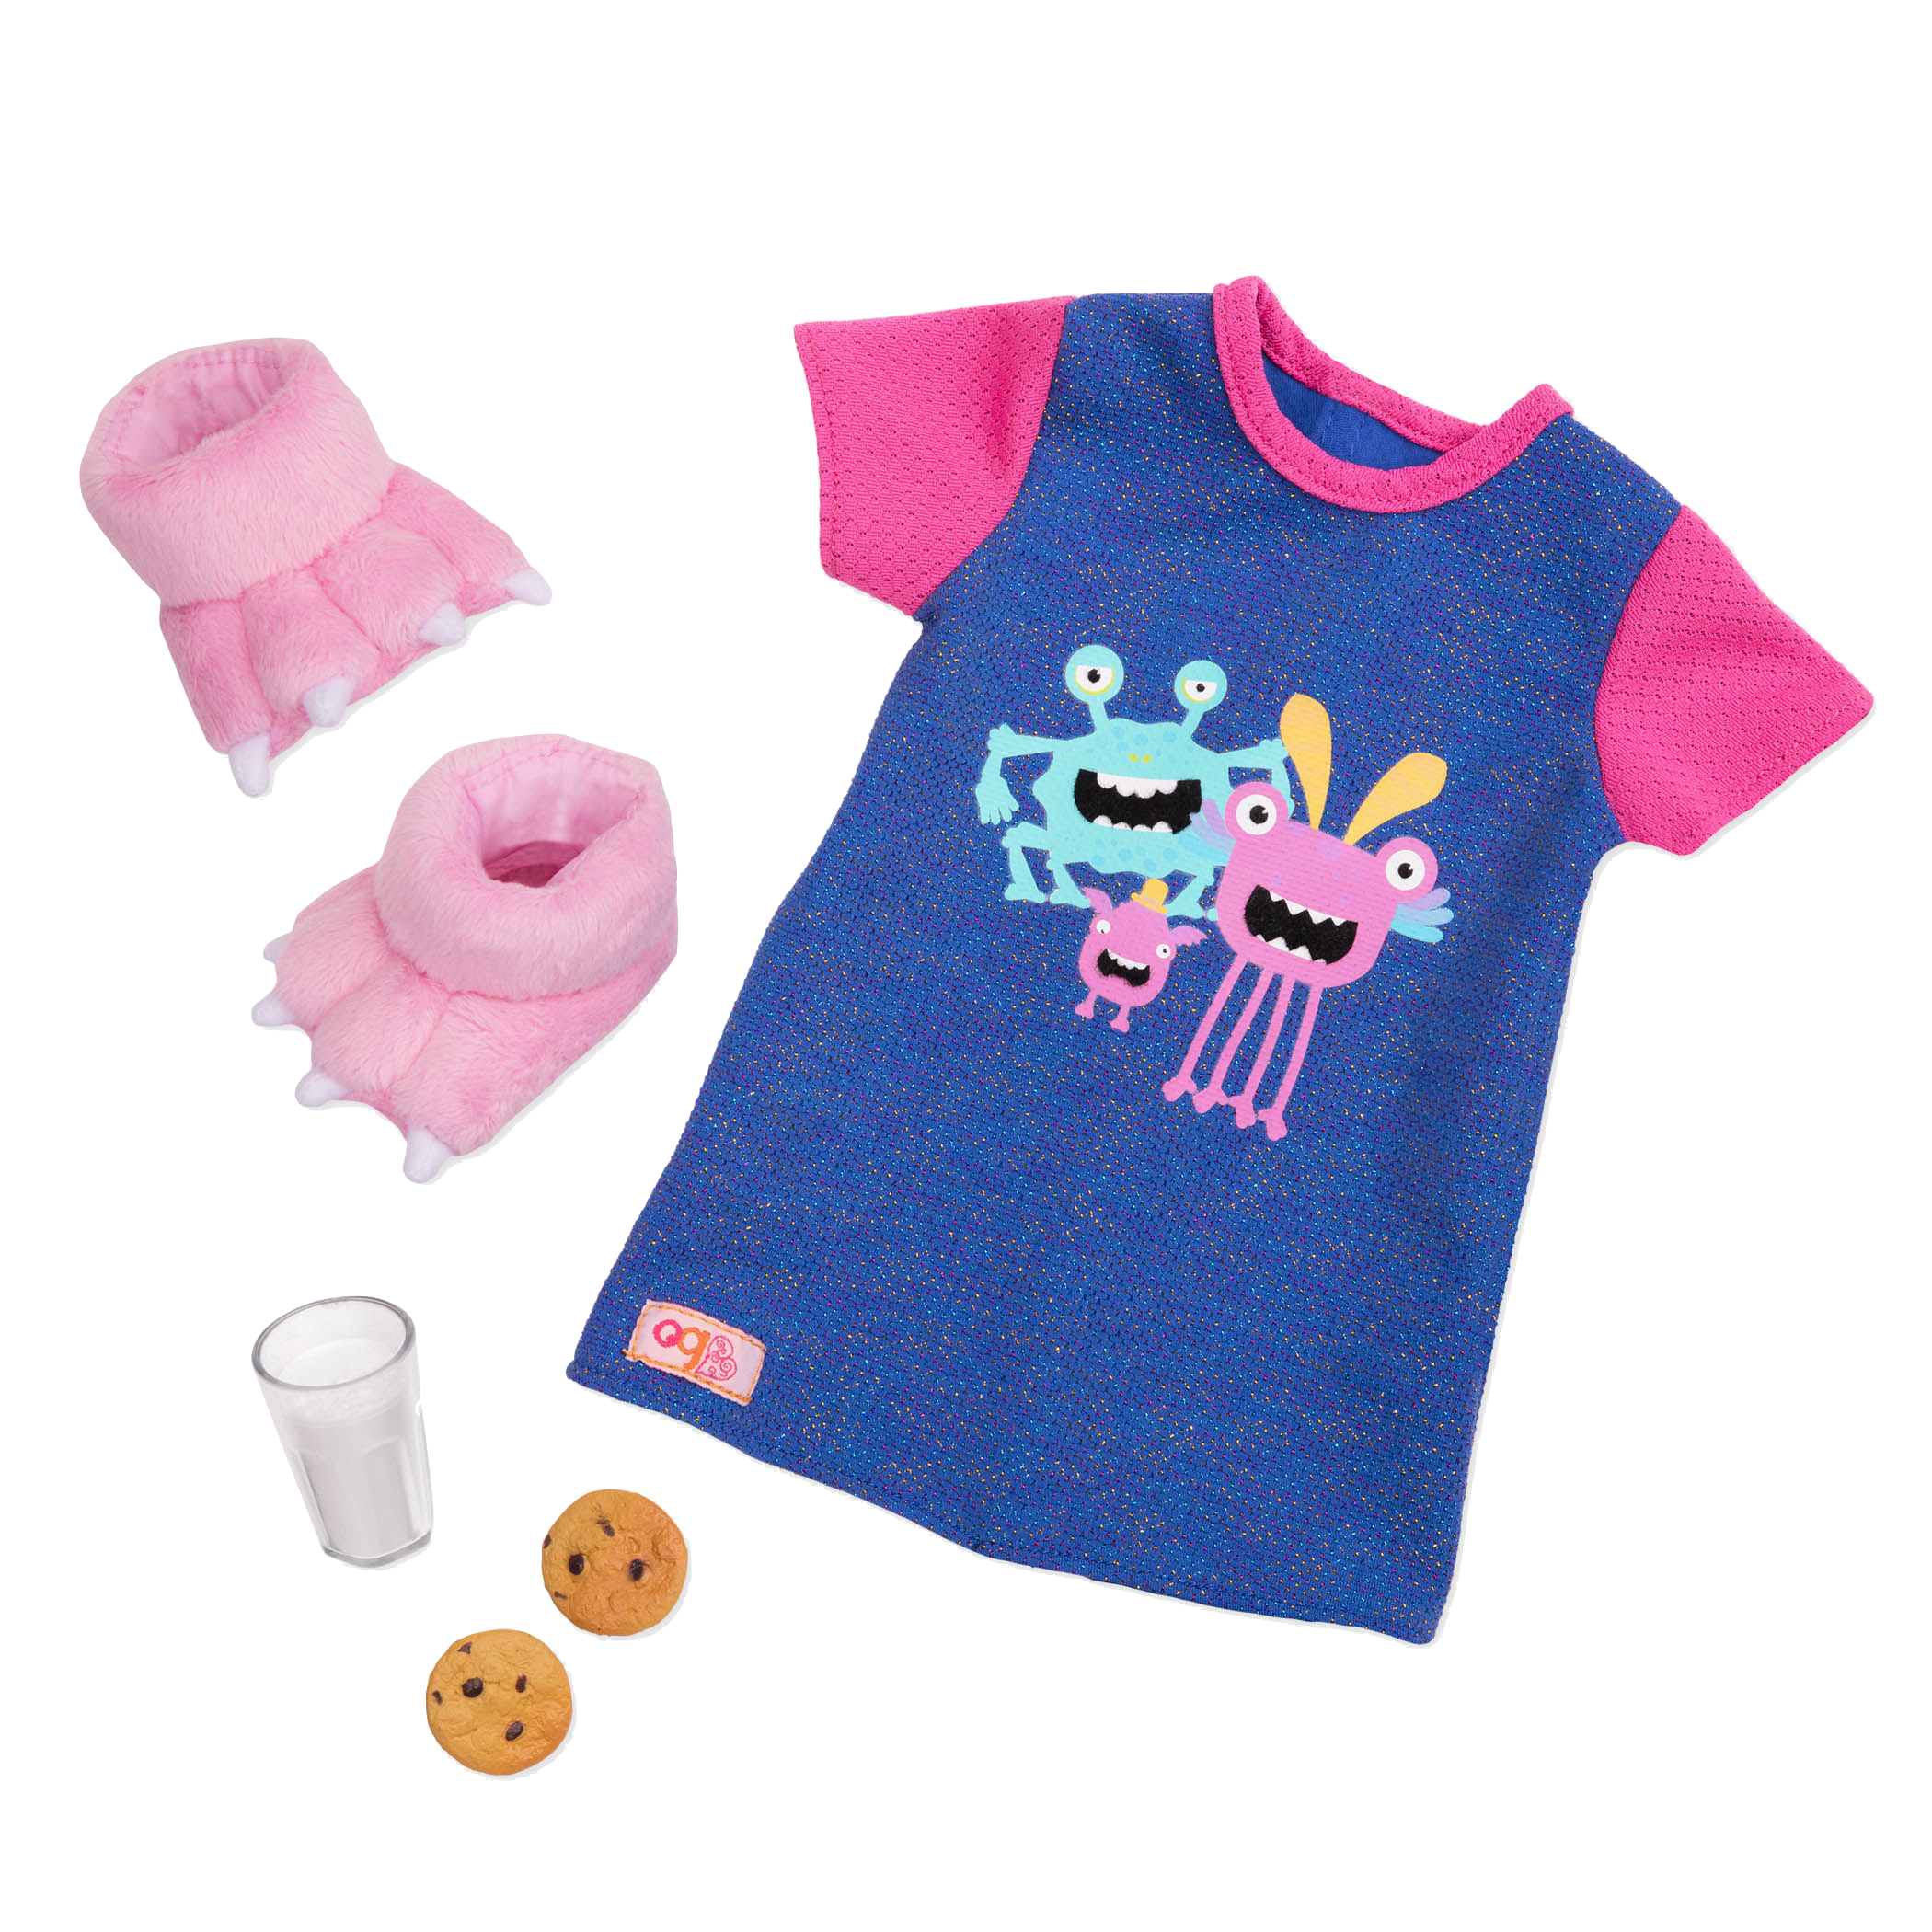 Our Generation - Snuggle Monster Nightdress Set (730371)